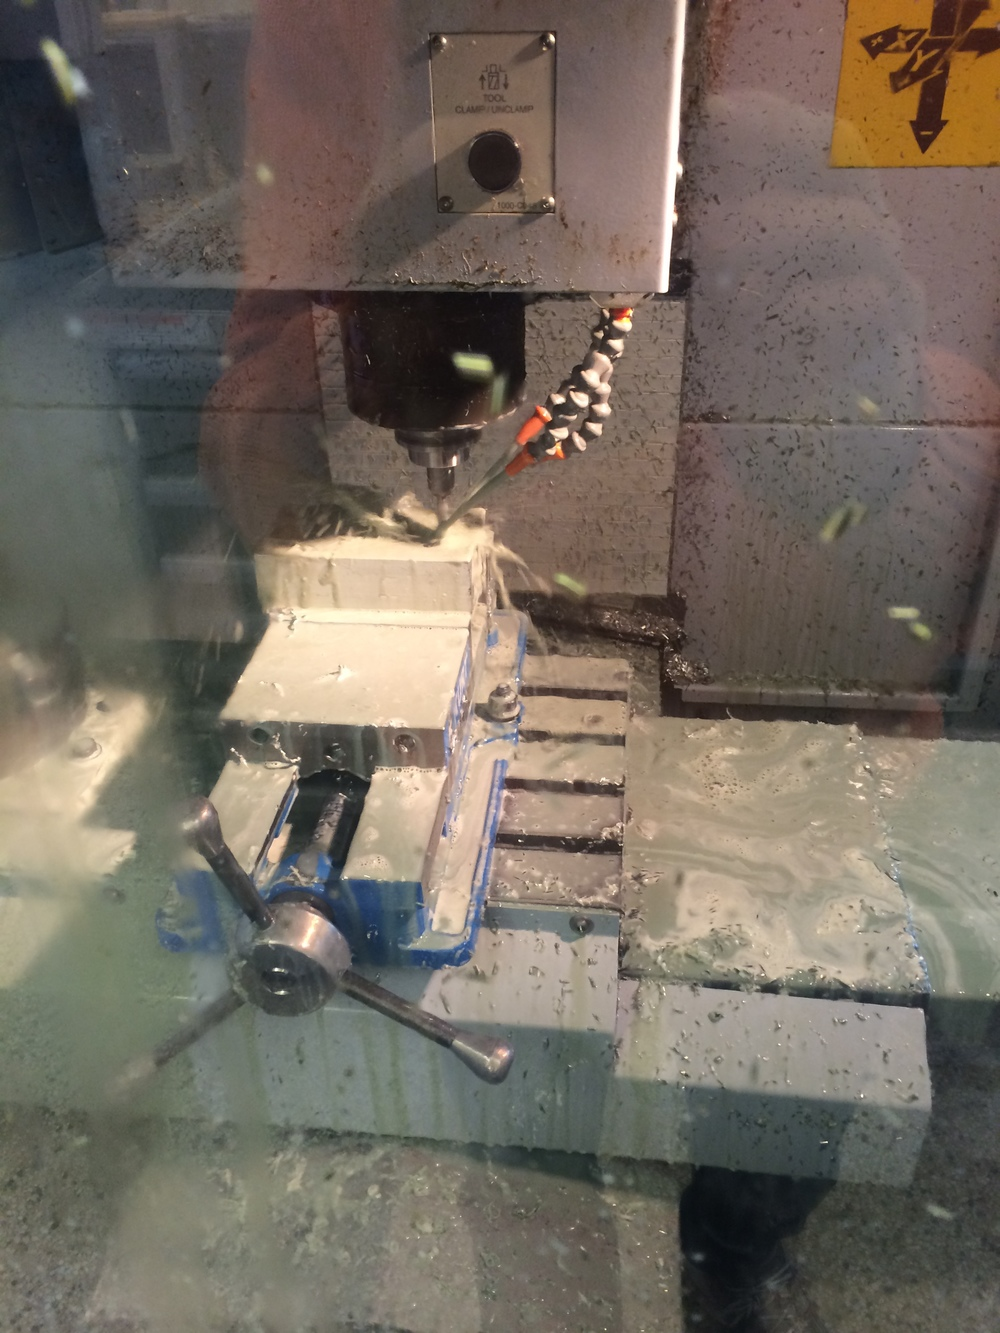 CNC Machining the Body